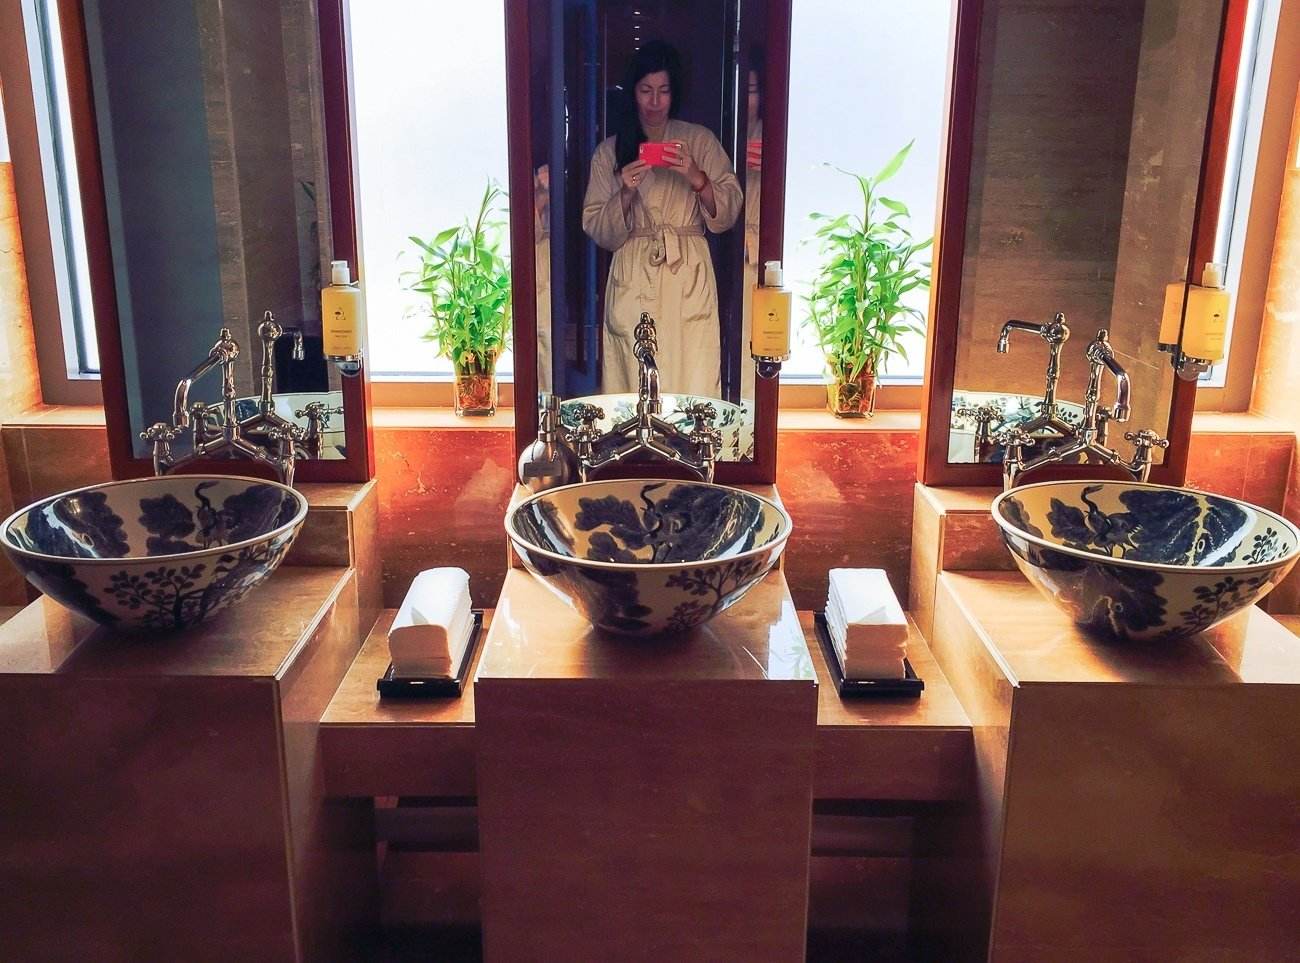 Gorgeous sinks in the female changing are at The Mandarin Spa, Hong Kong